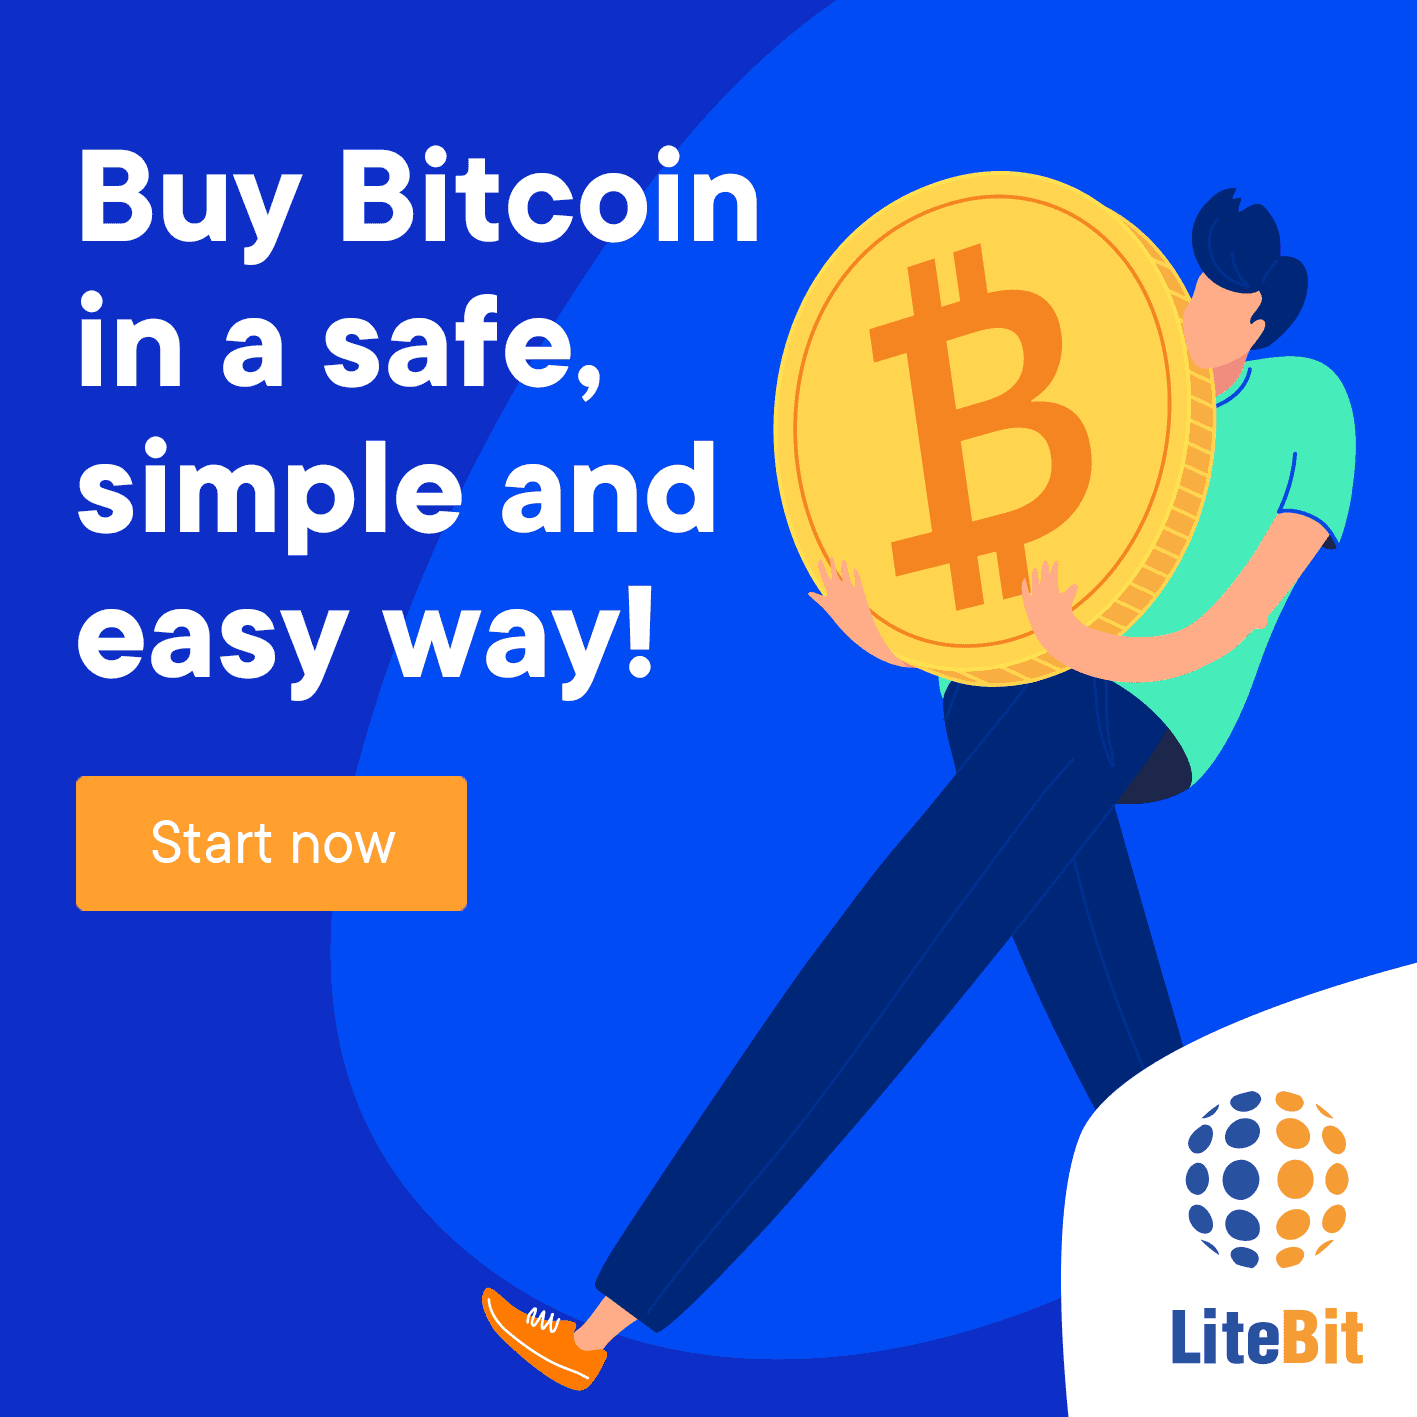 Litebit buy, sell and trade cryptocurrency like Bitcoin, Ethereum, Ripple